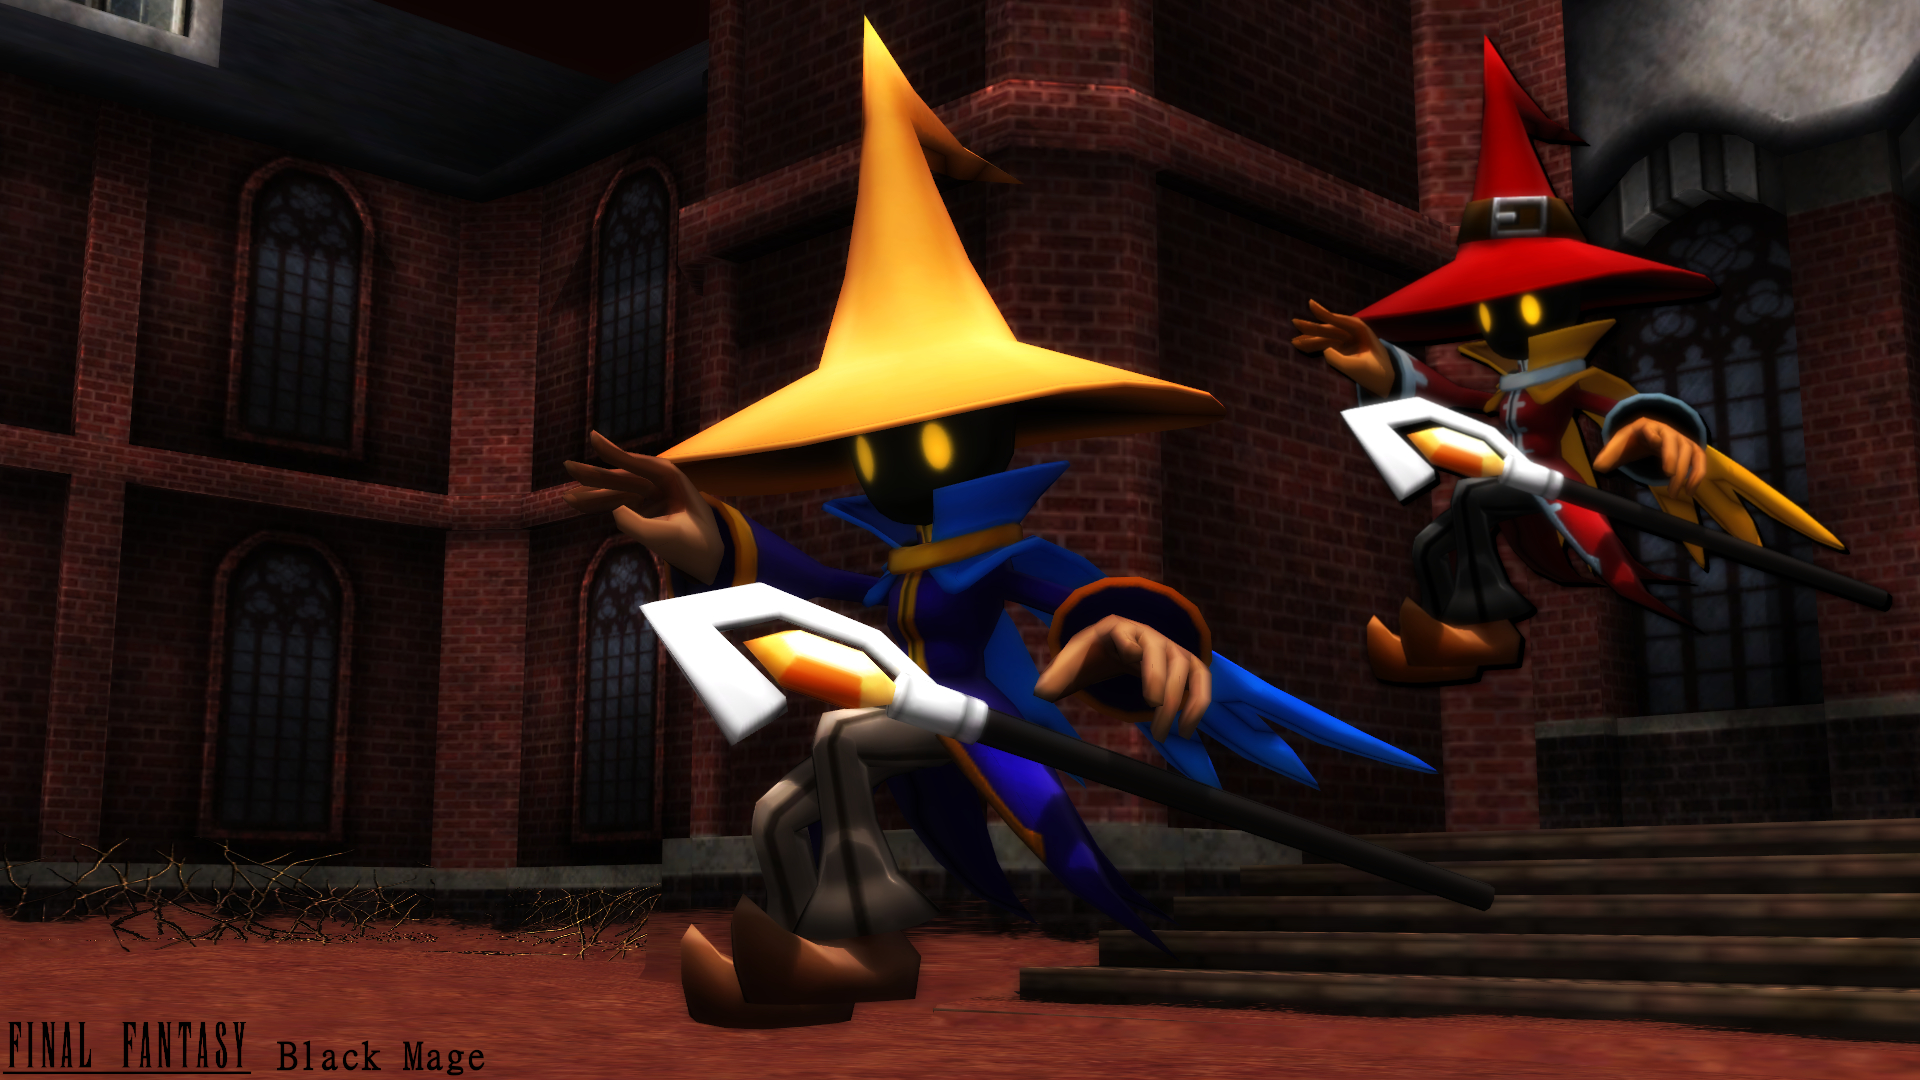 Mmd Model Black Mage Download By Sab64 On Deviantart